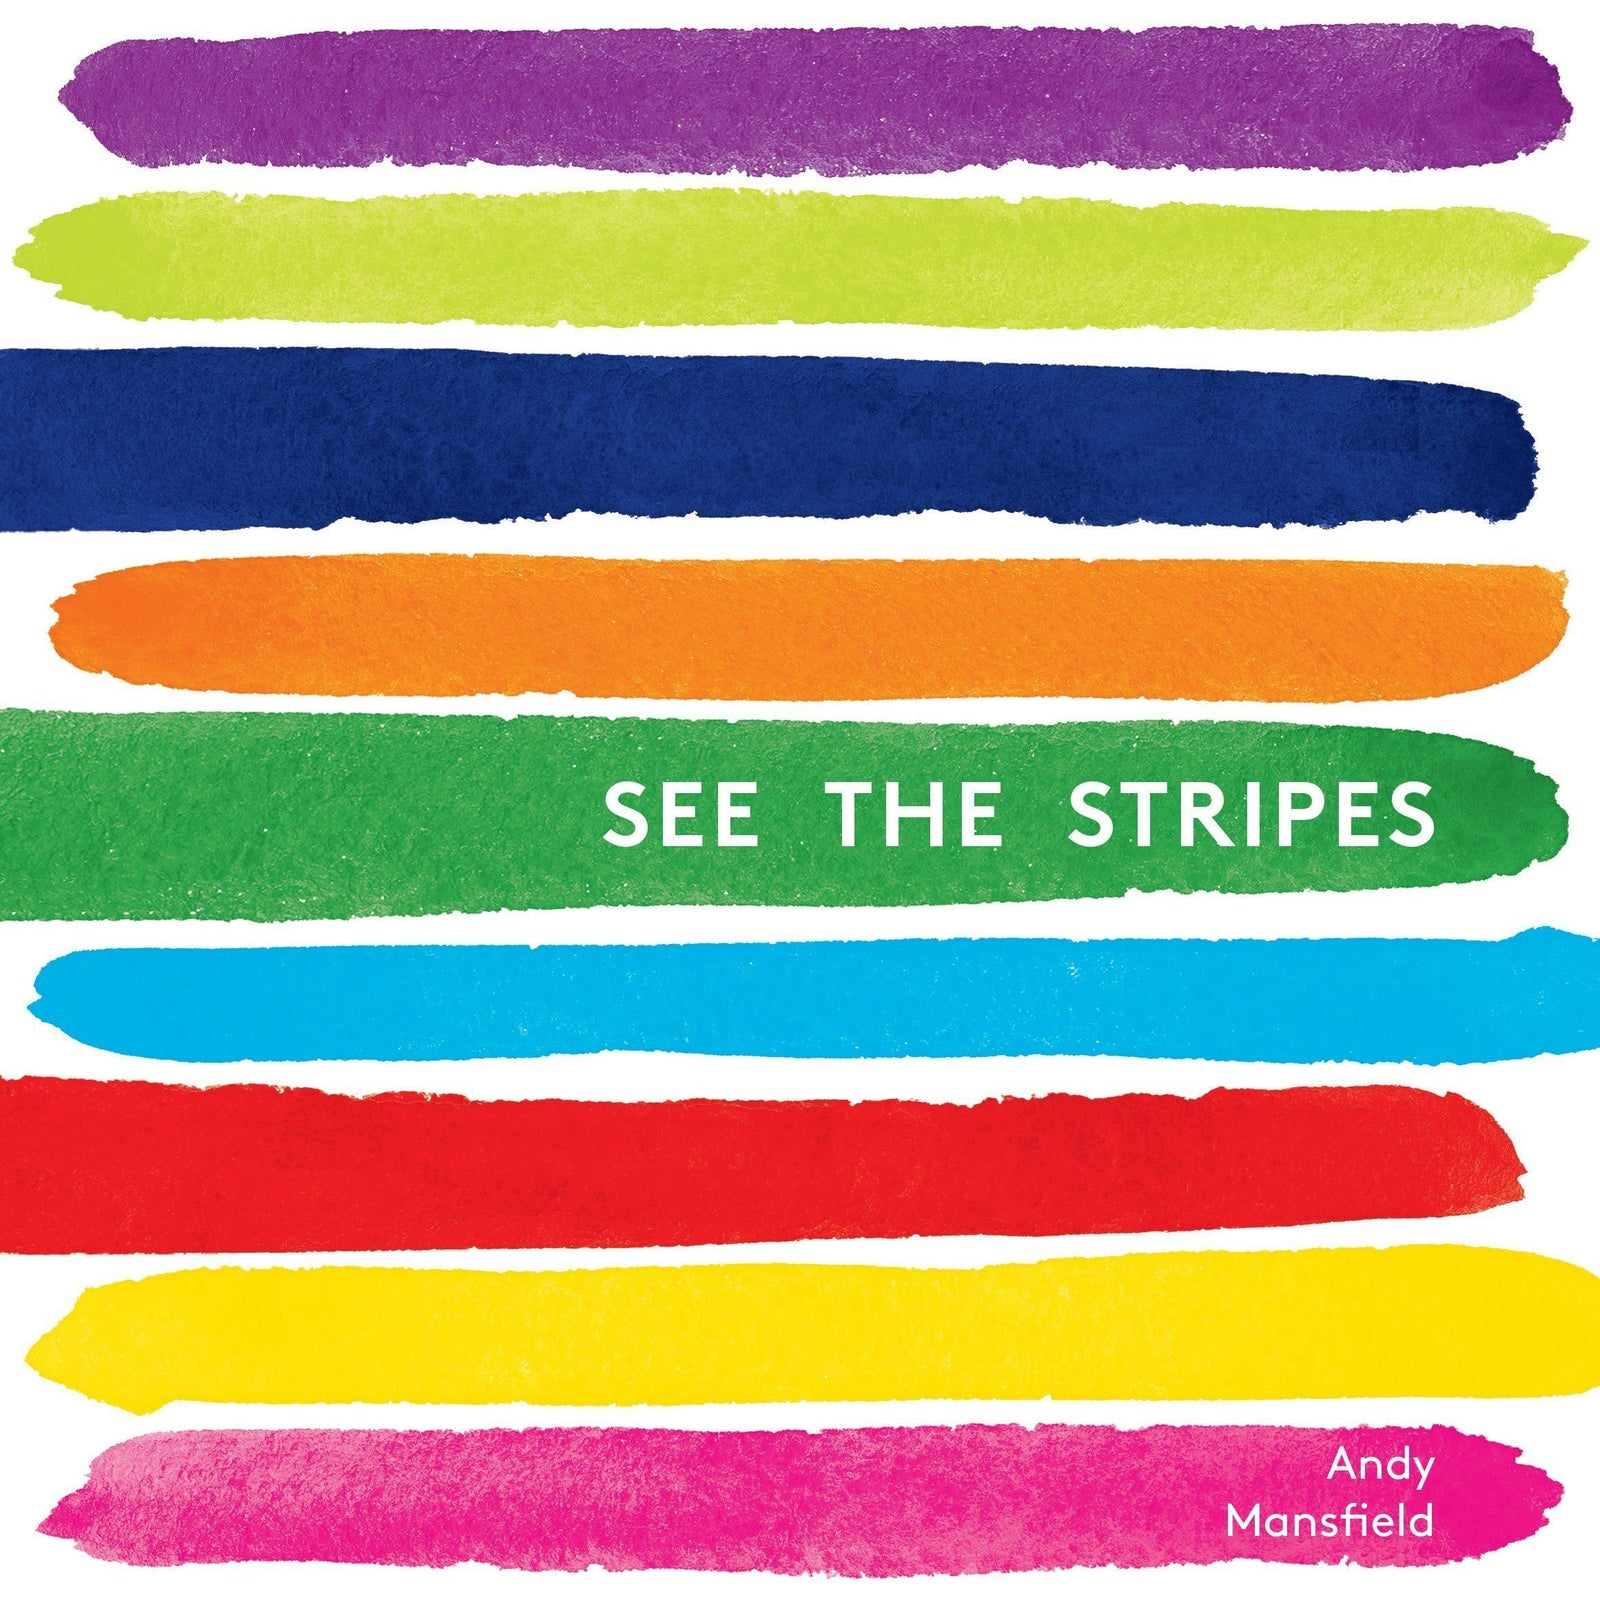 See the Stripes